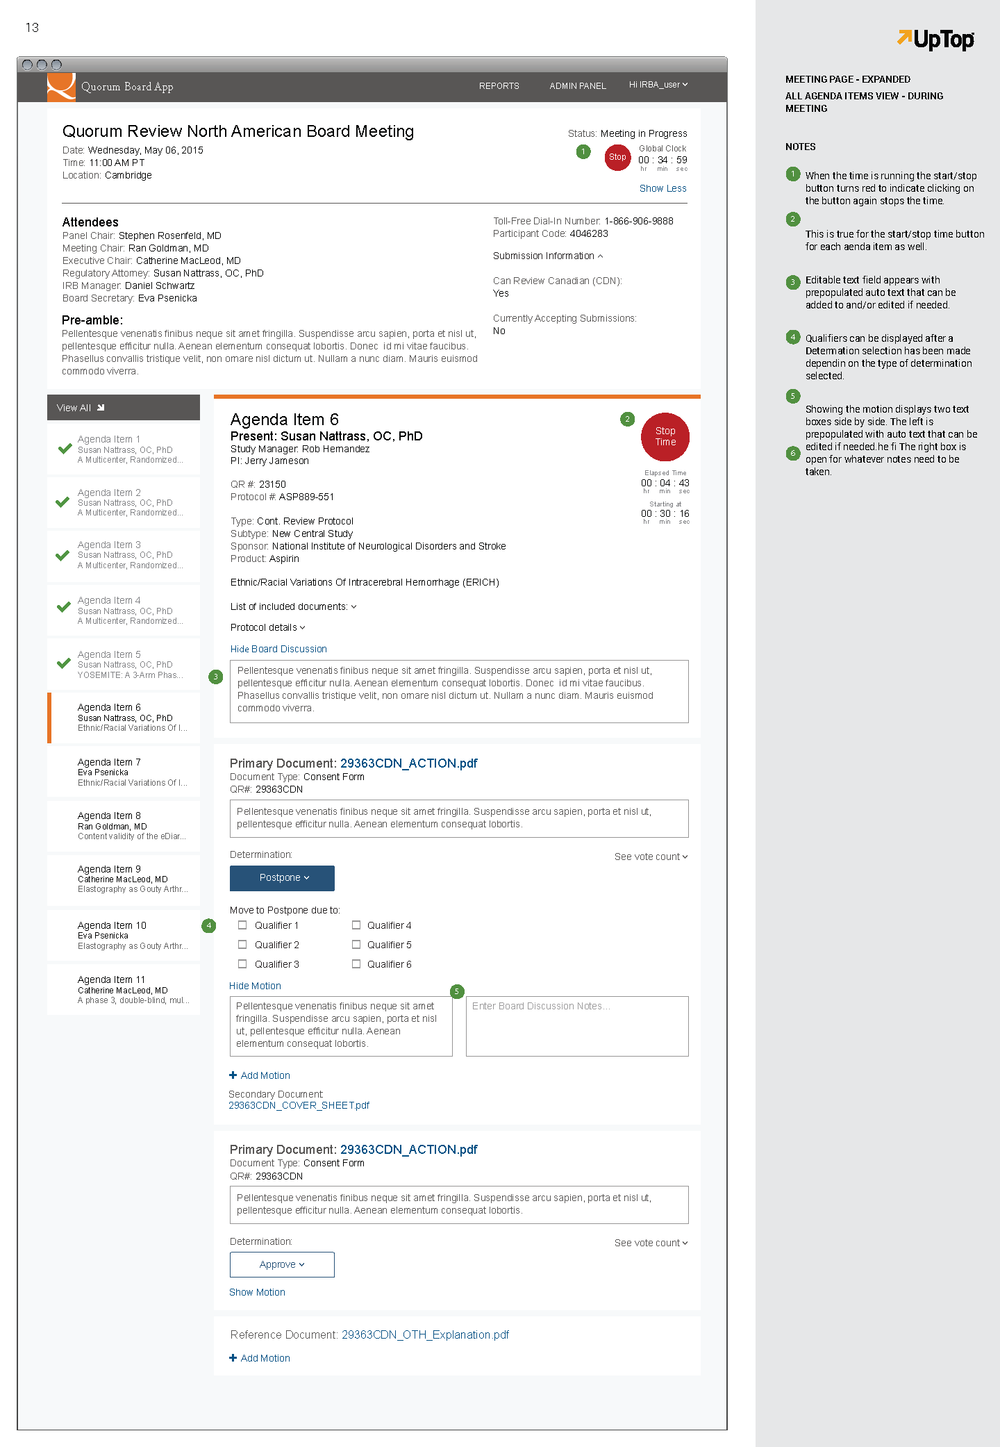 04 - quorum_review_boardapp_wireframes_dashboard_FINAL_Page_13.png